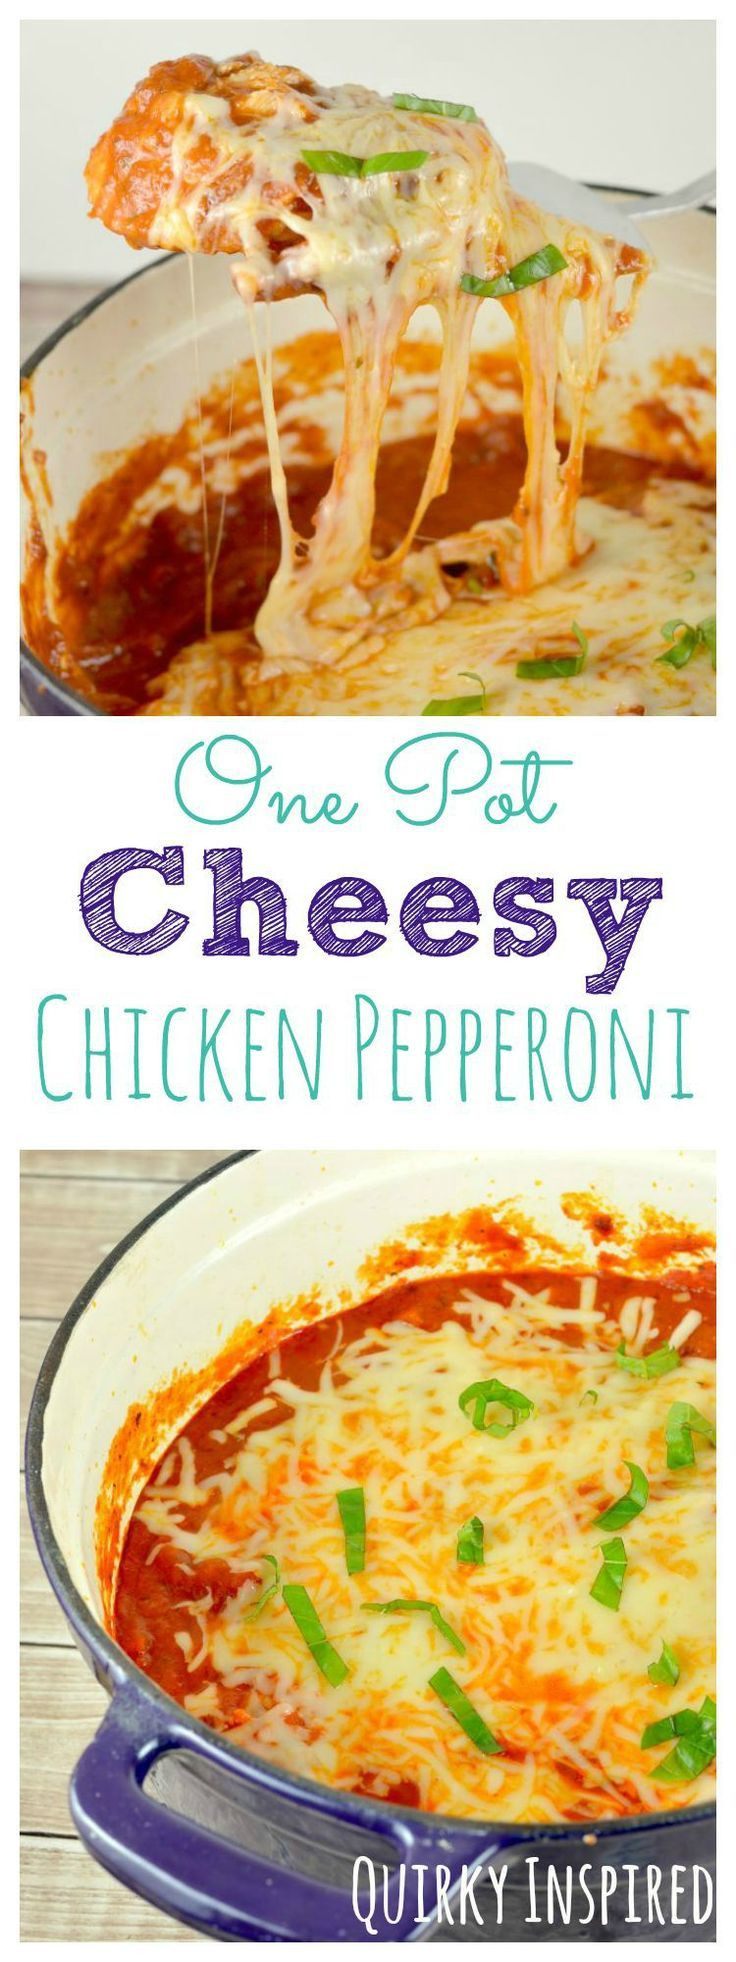 Looking for an easy way to get dinner done? Check out this one pot recipe! One pot Cheesy Chicken Pepperoni, plus great crafts to repurpose those Classico jars when you are done! #ad